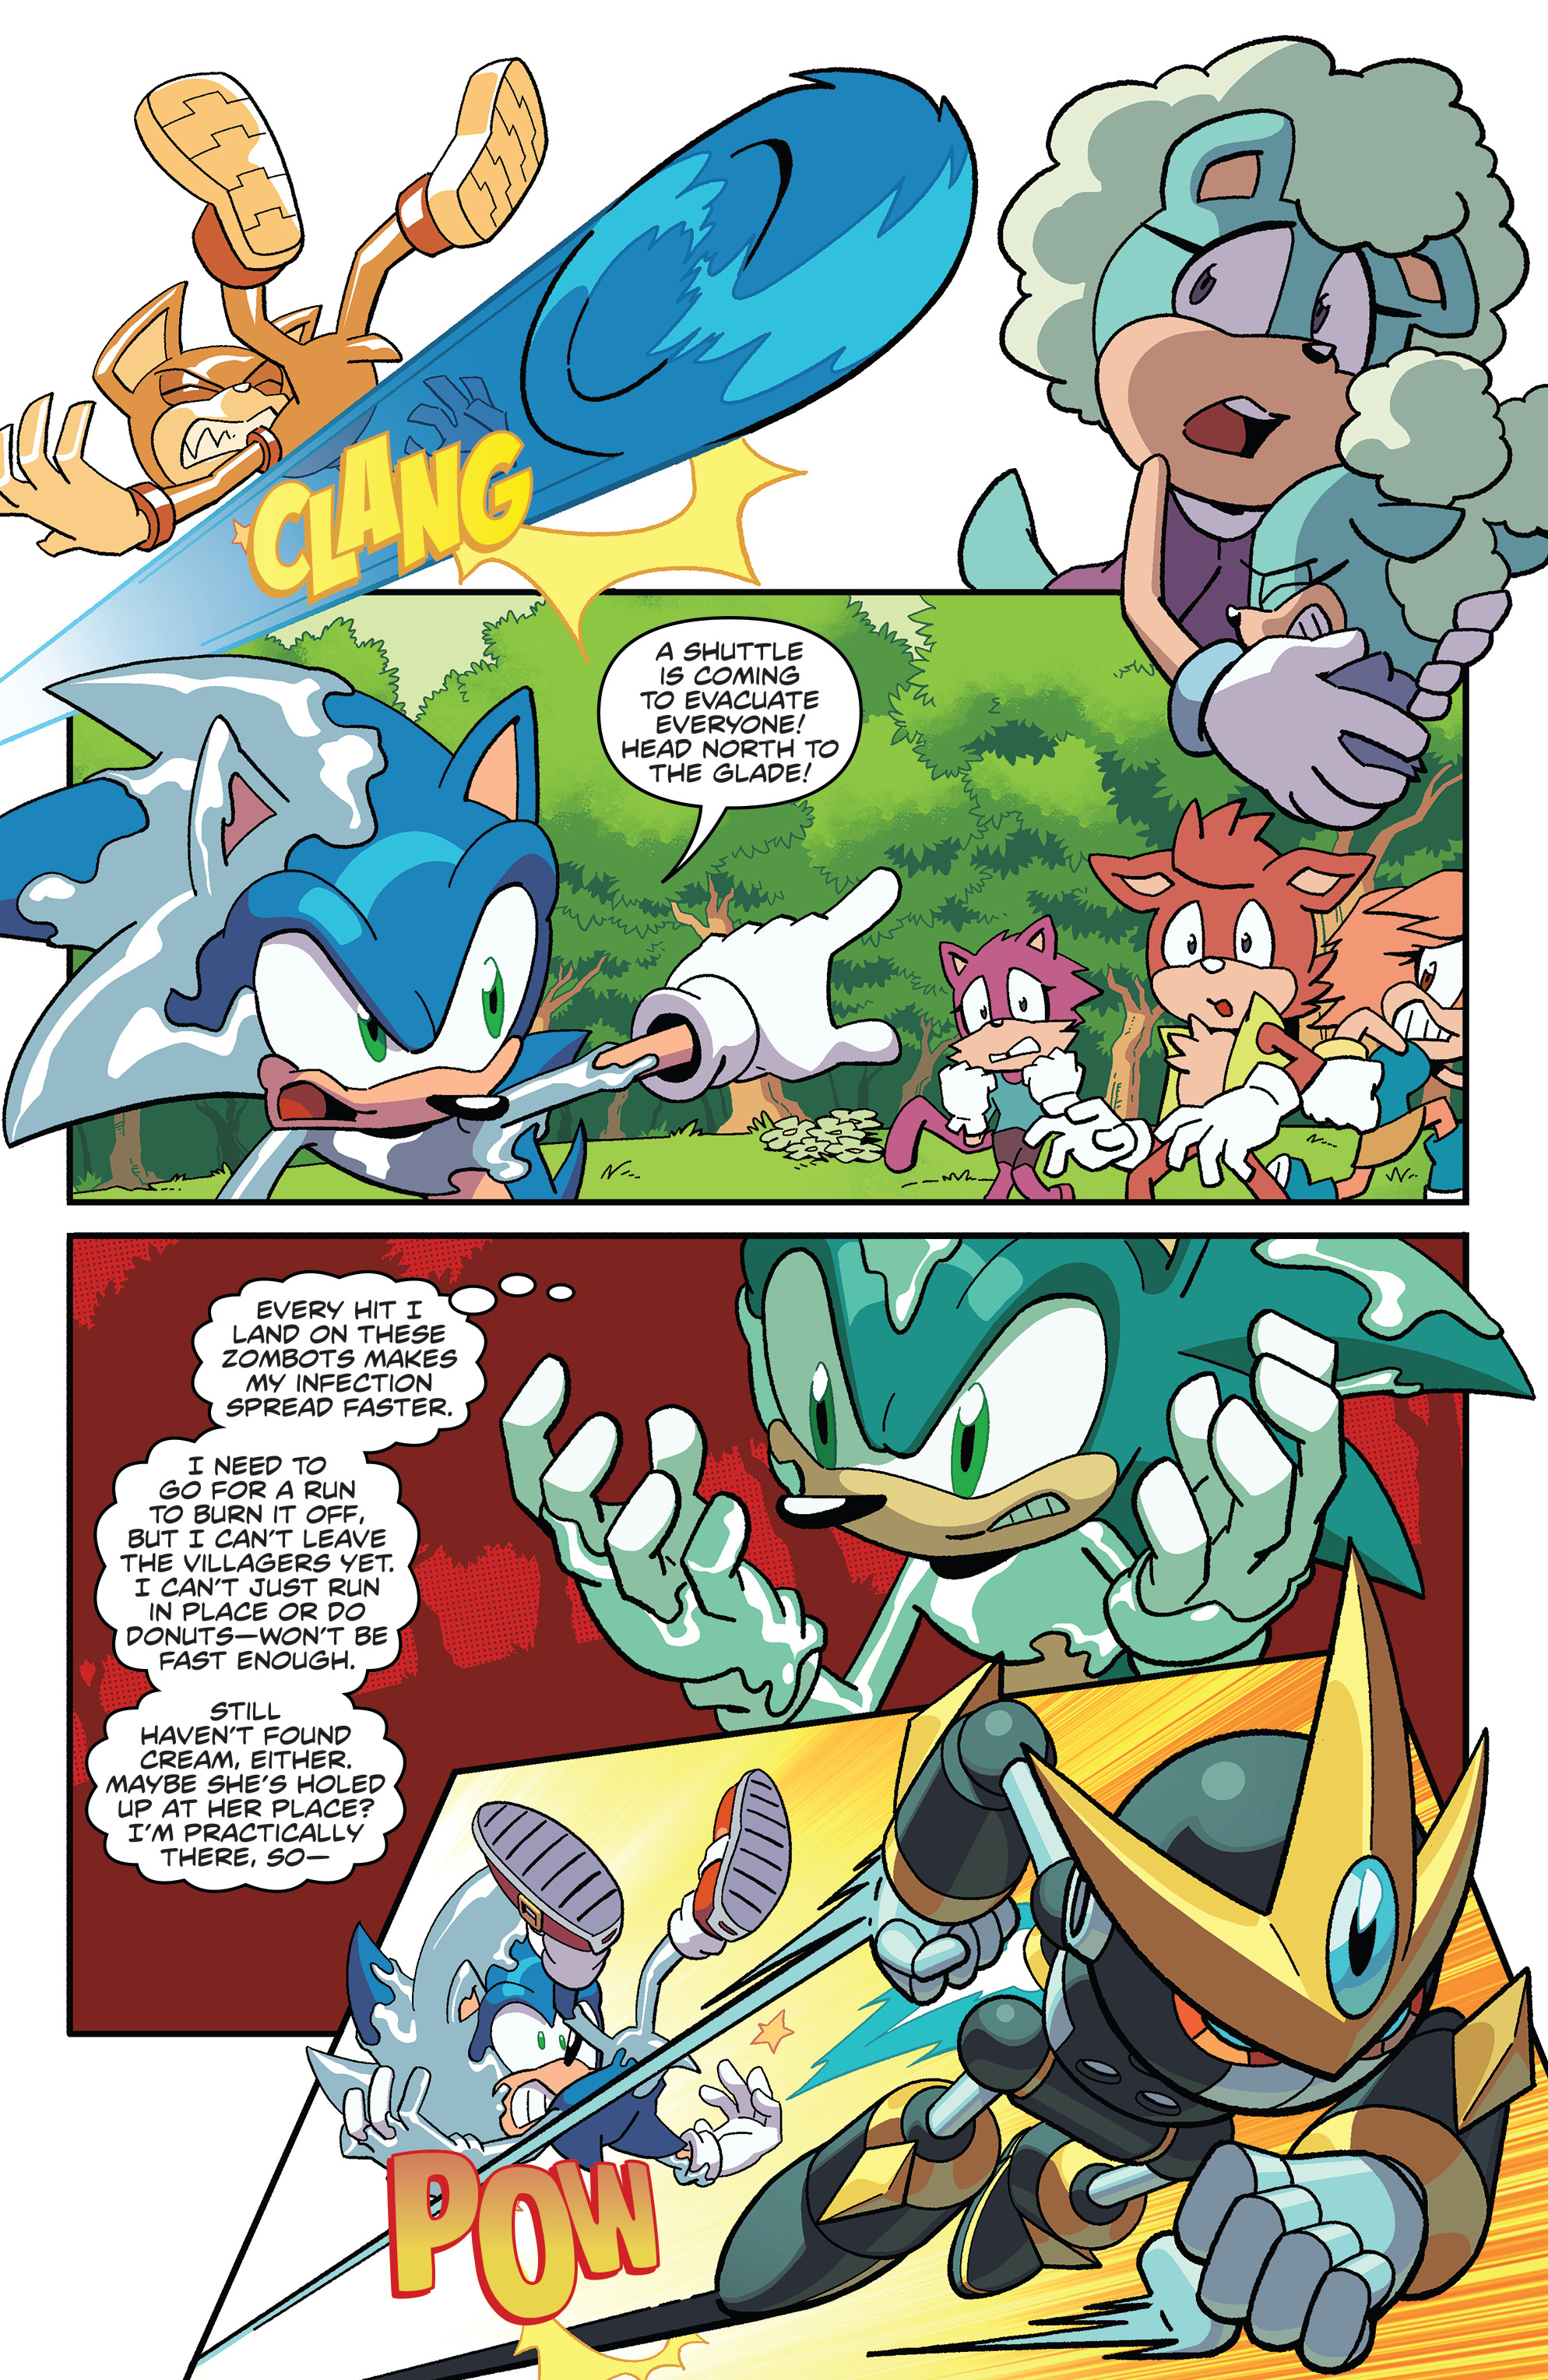 Sonic The Hedgehog 2018 Chapter 18 Page 11